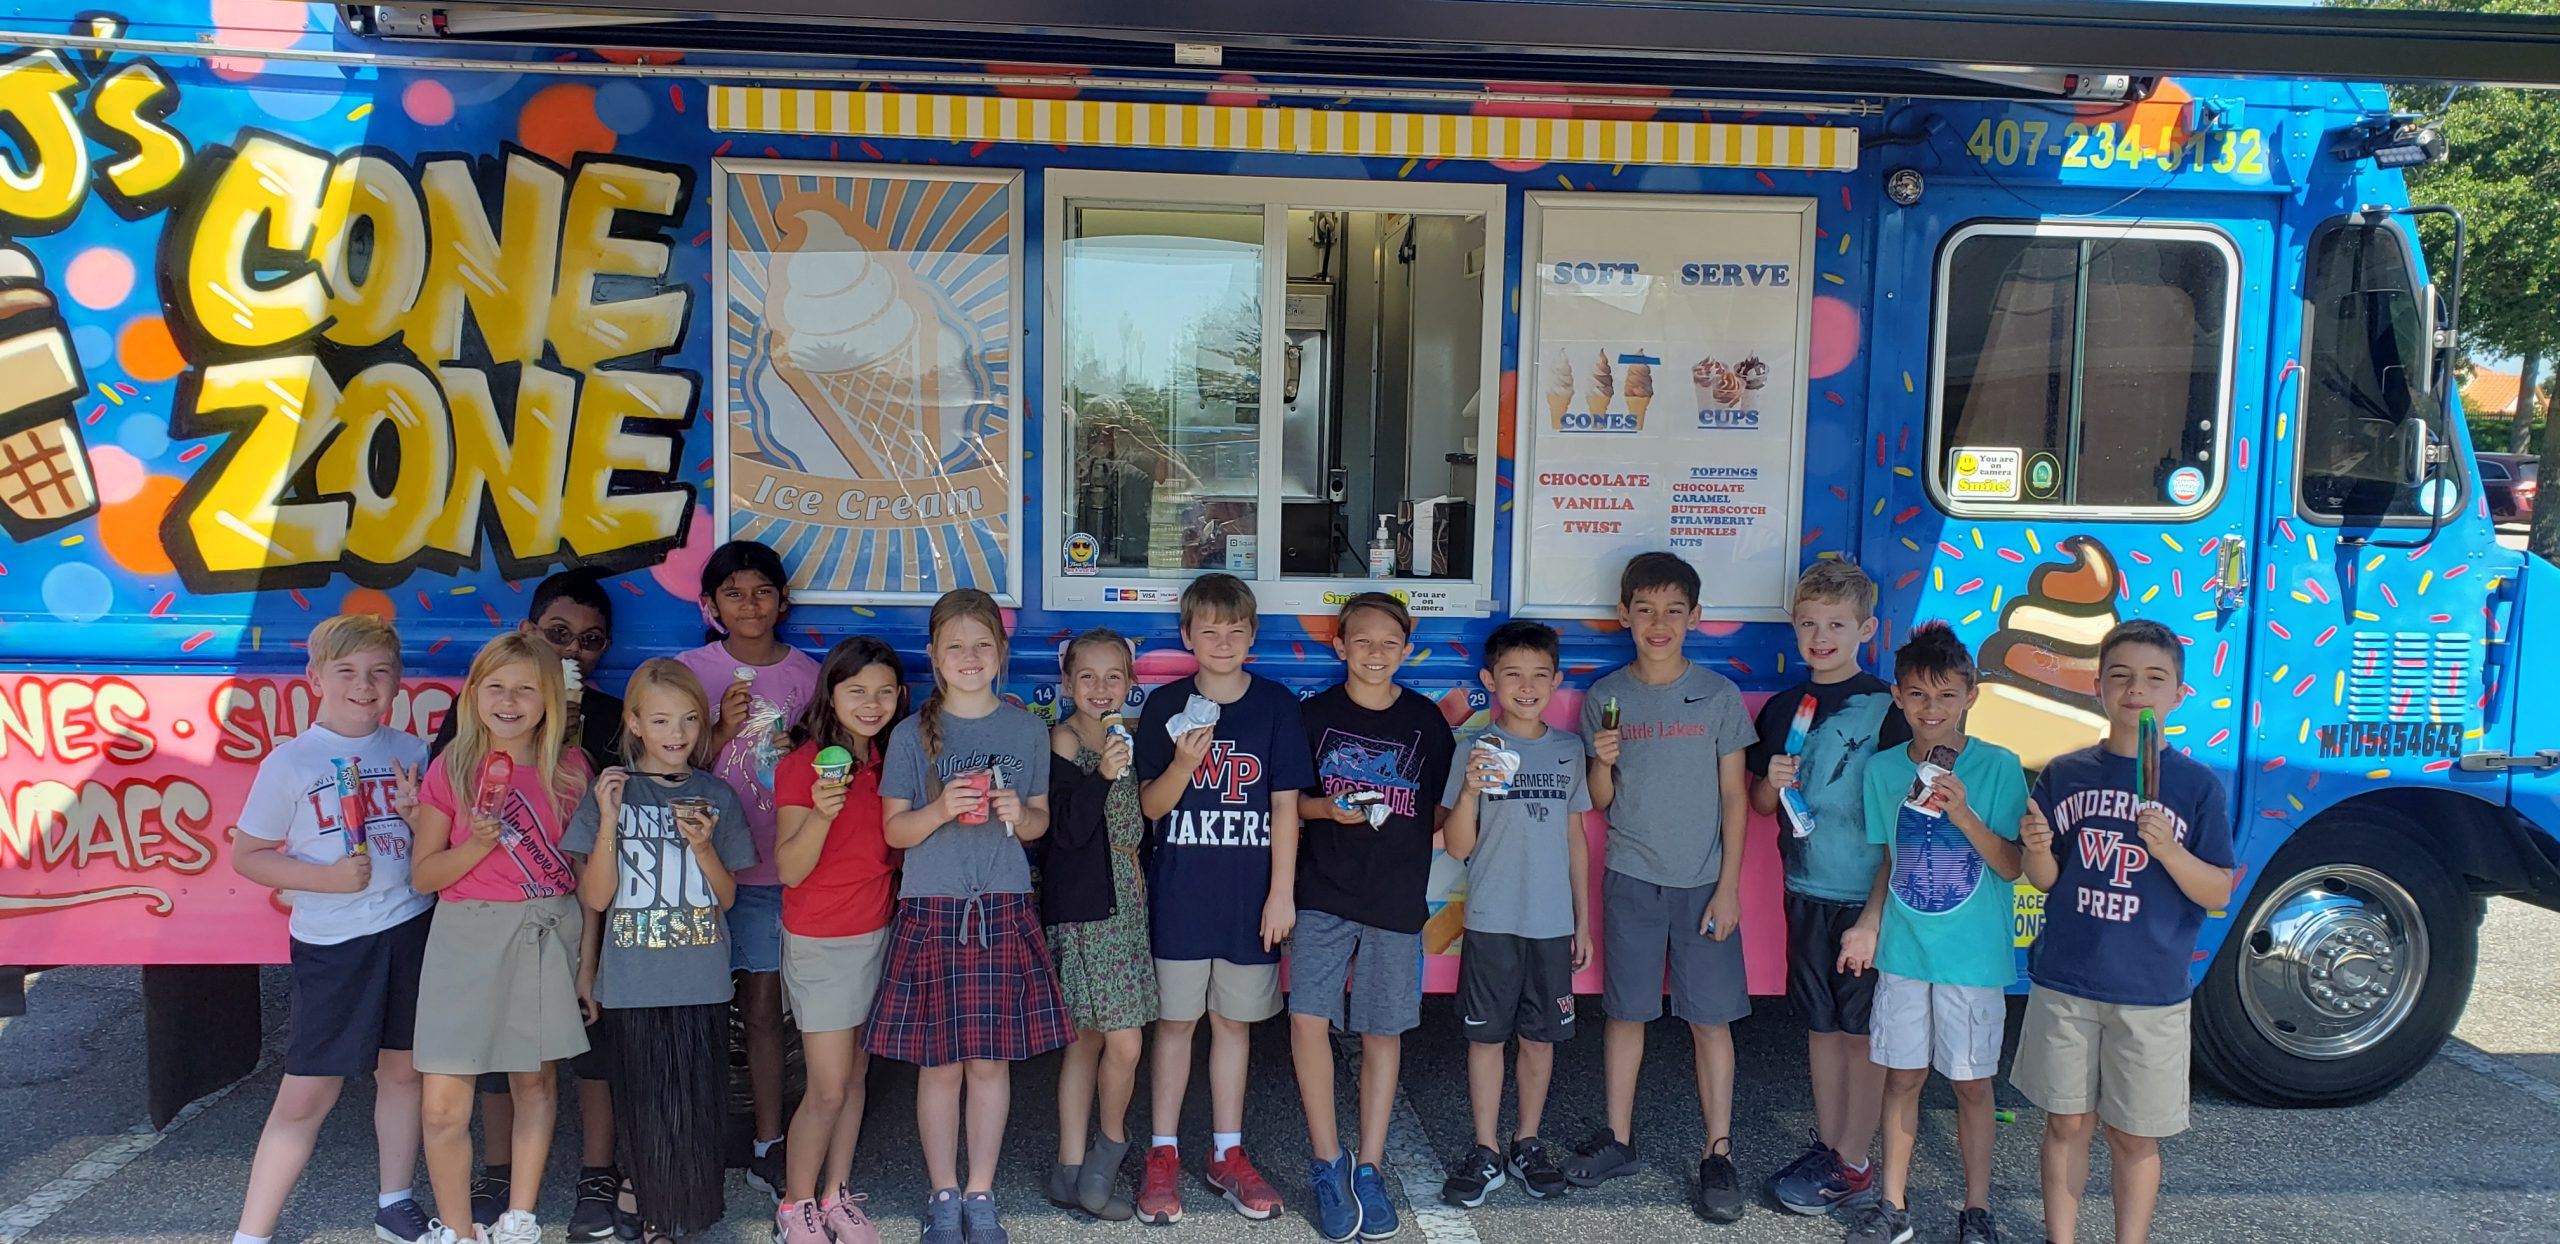 Photo of kids in front of J's Cone Zone truck.